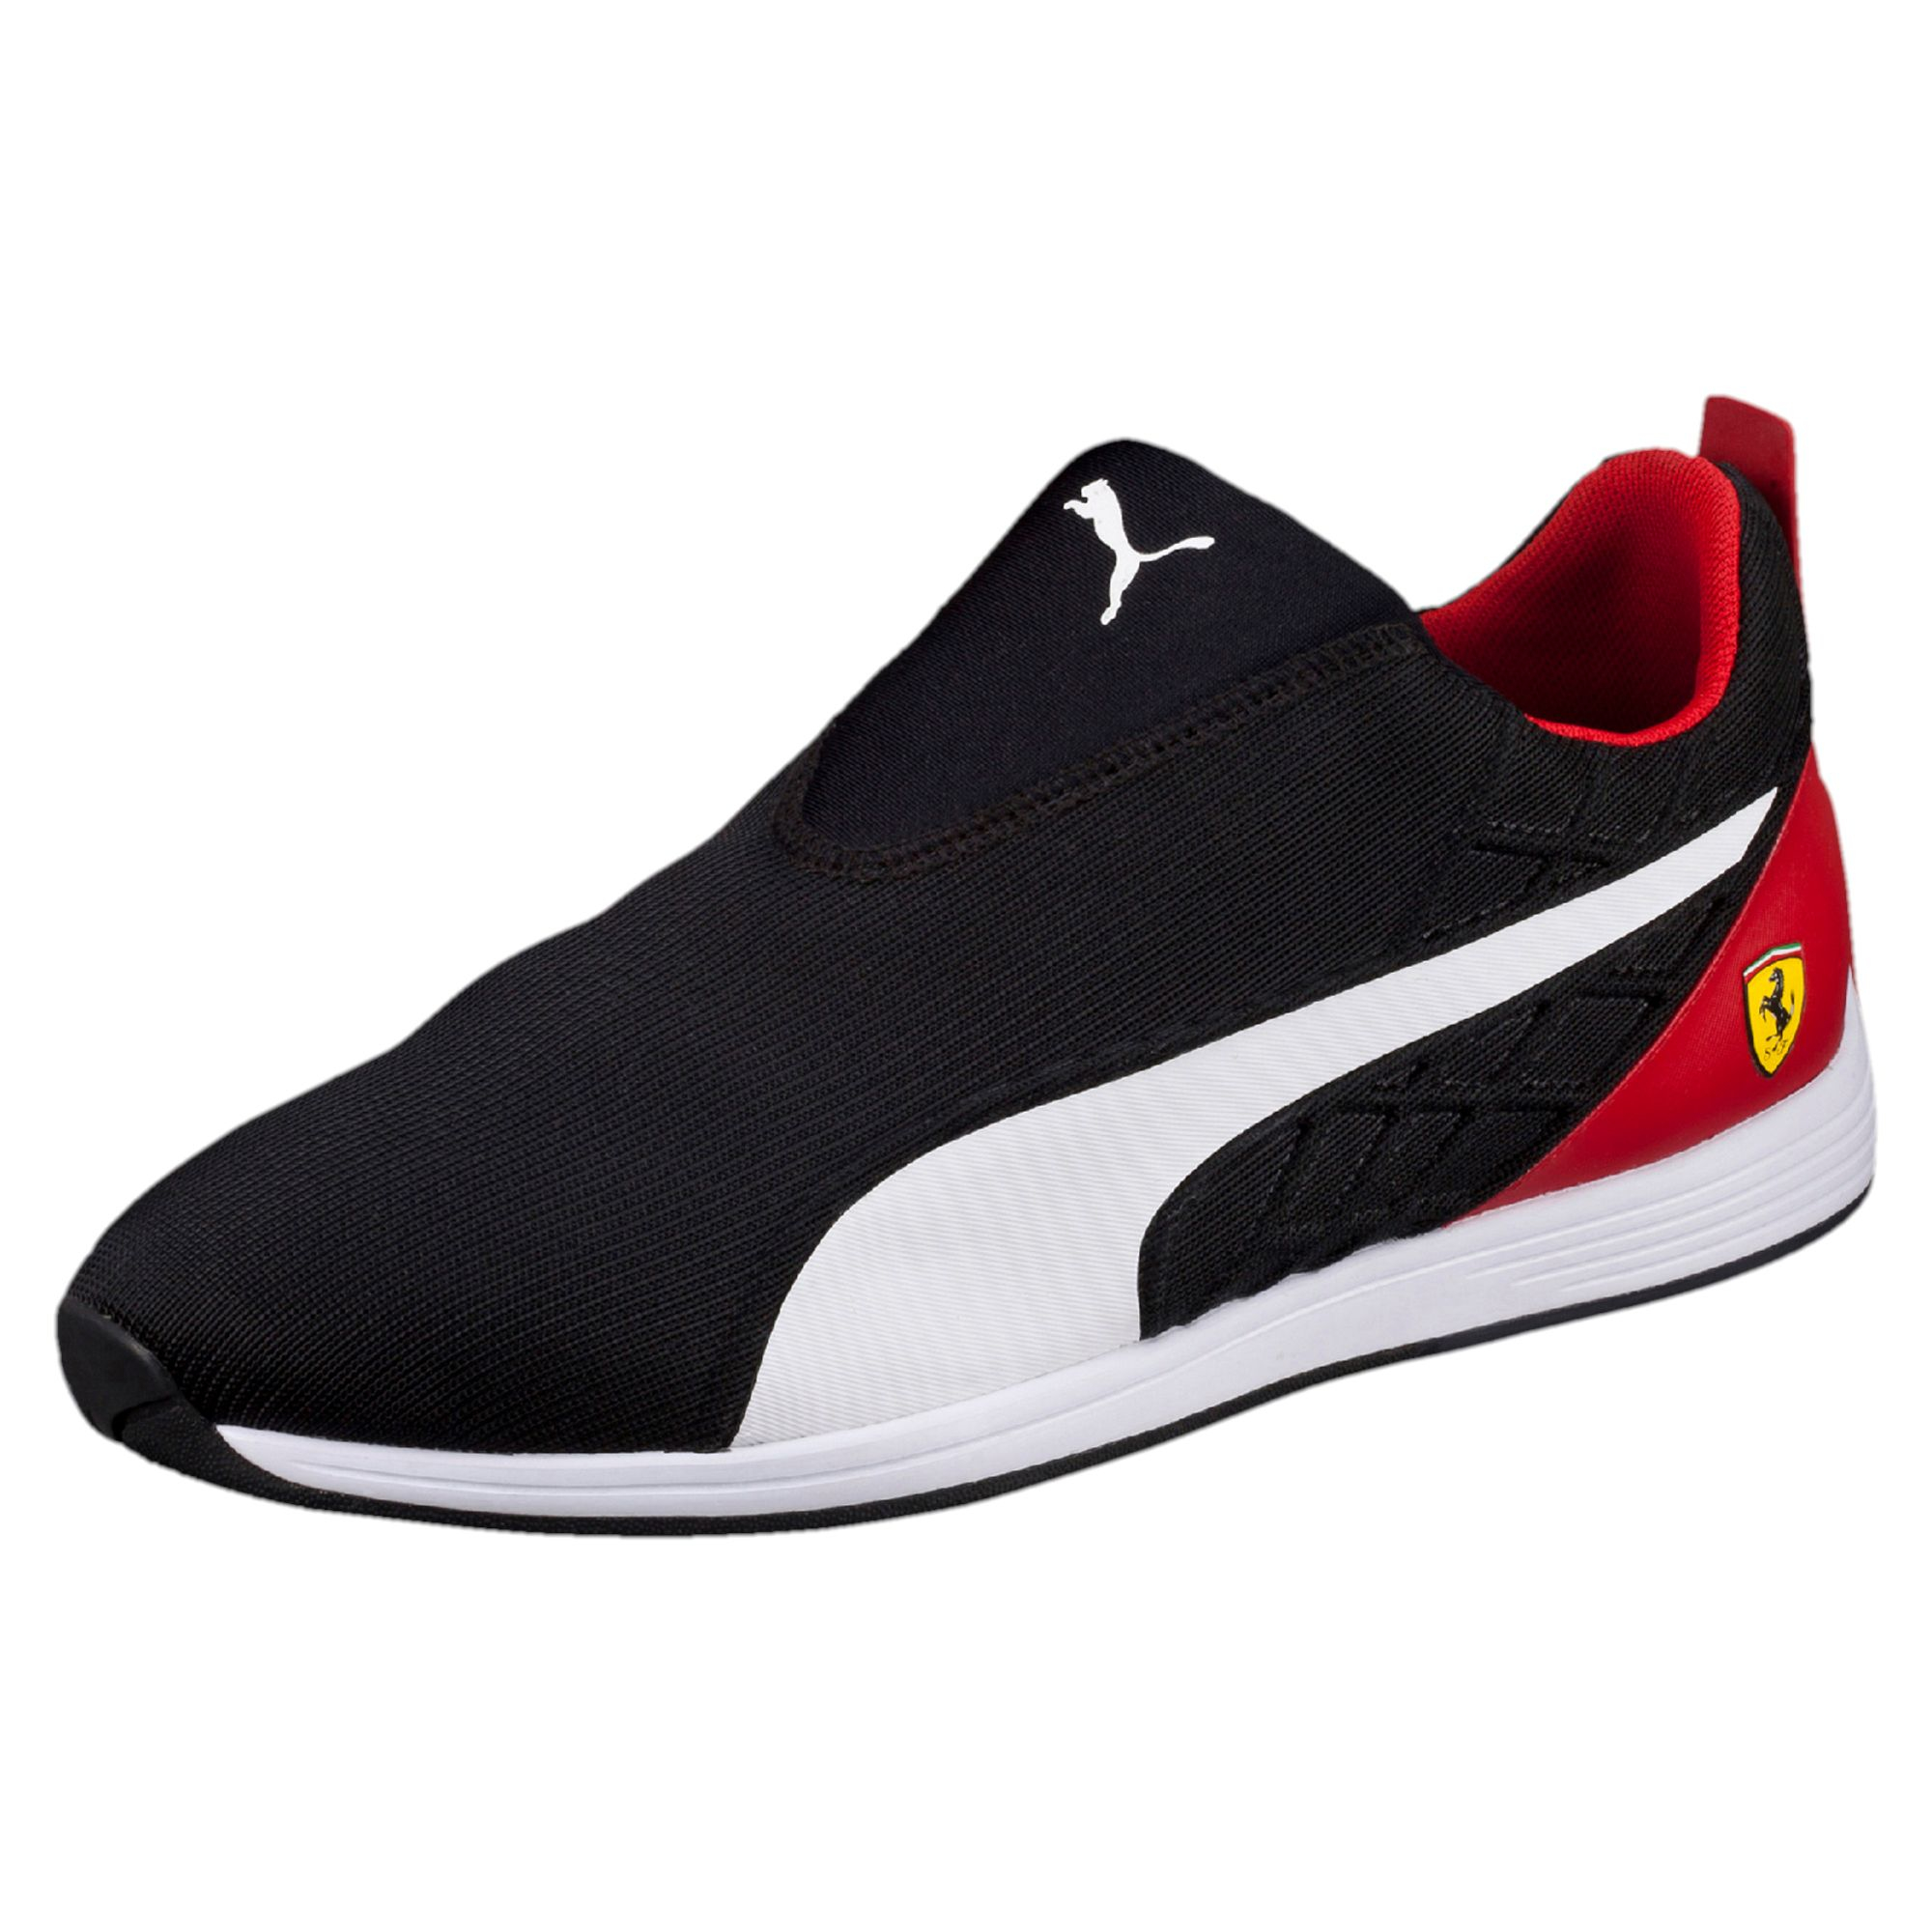 Lyst - PUMA Ferrari Evospeed Sl 1.4 Men s Shoes in Black for Men e12cb00b4